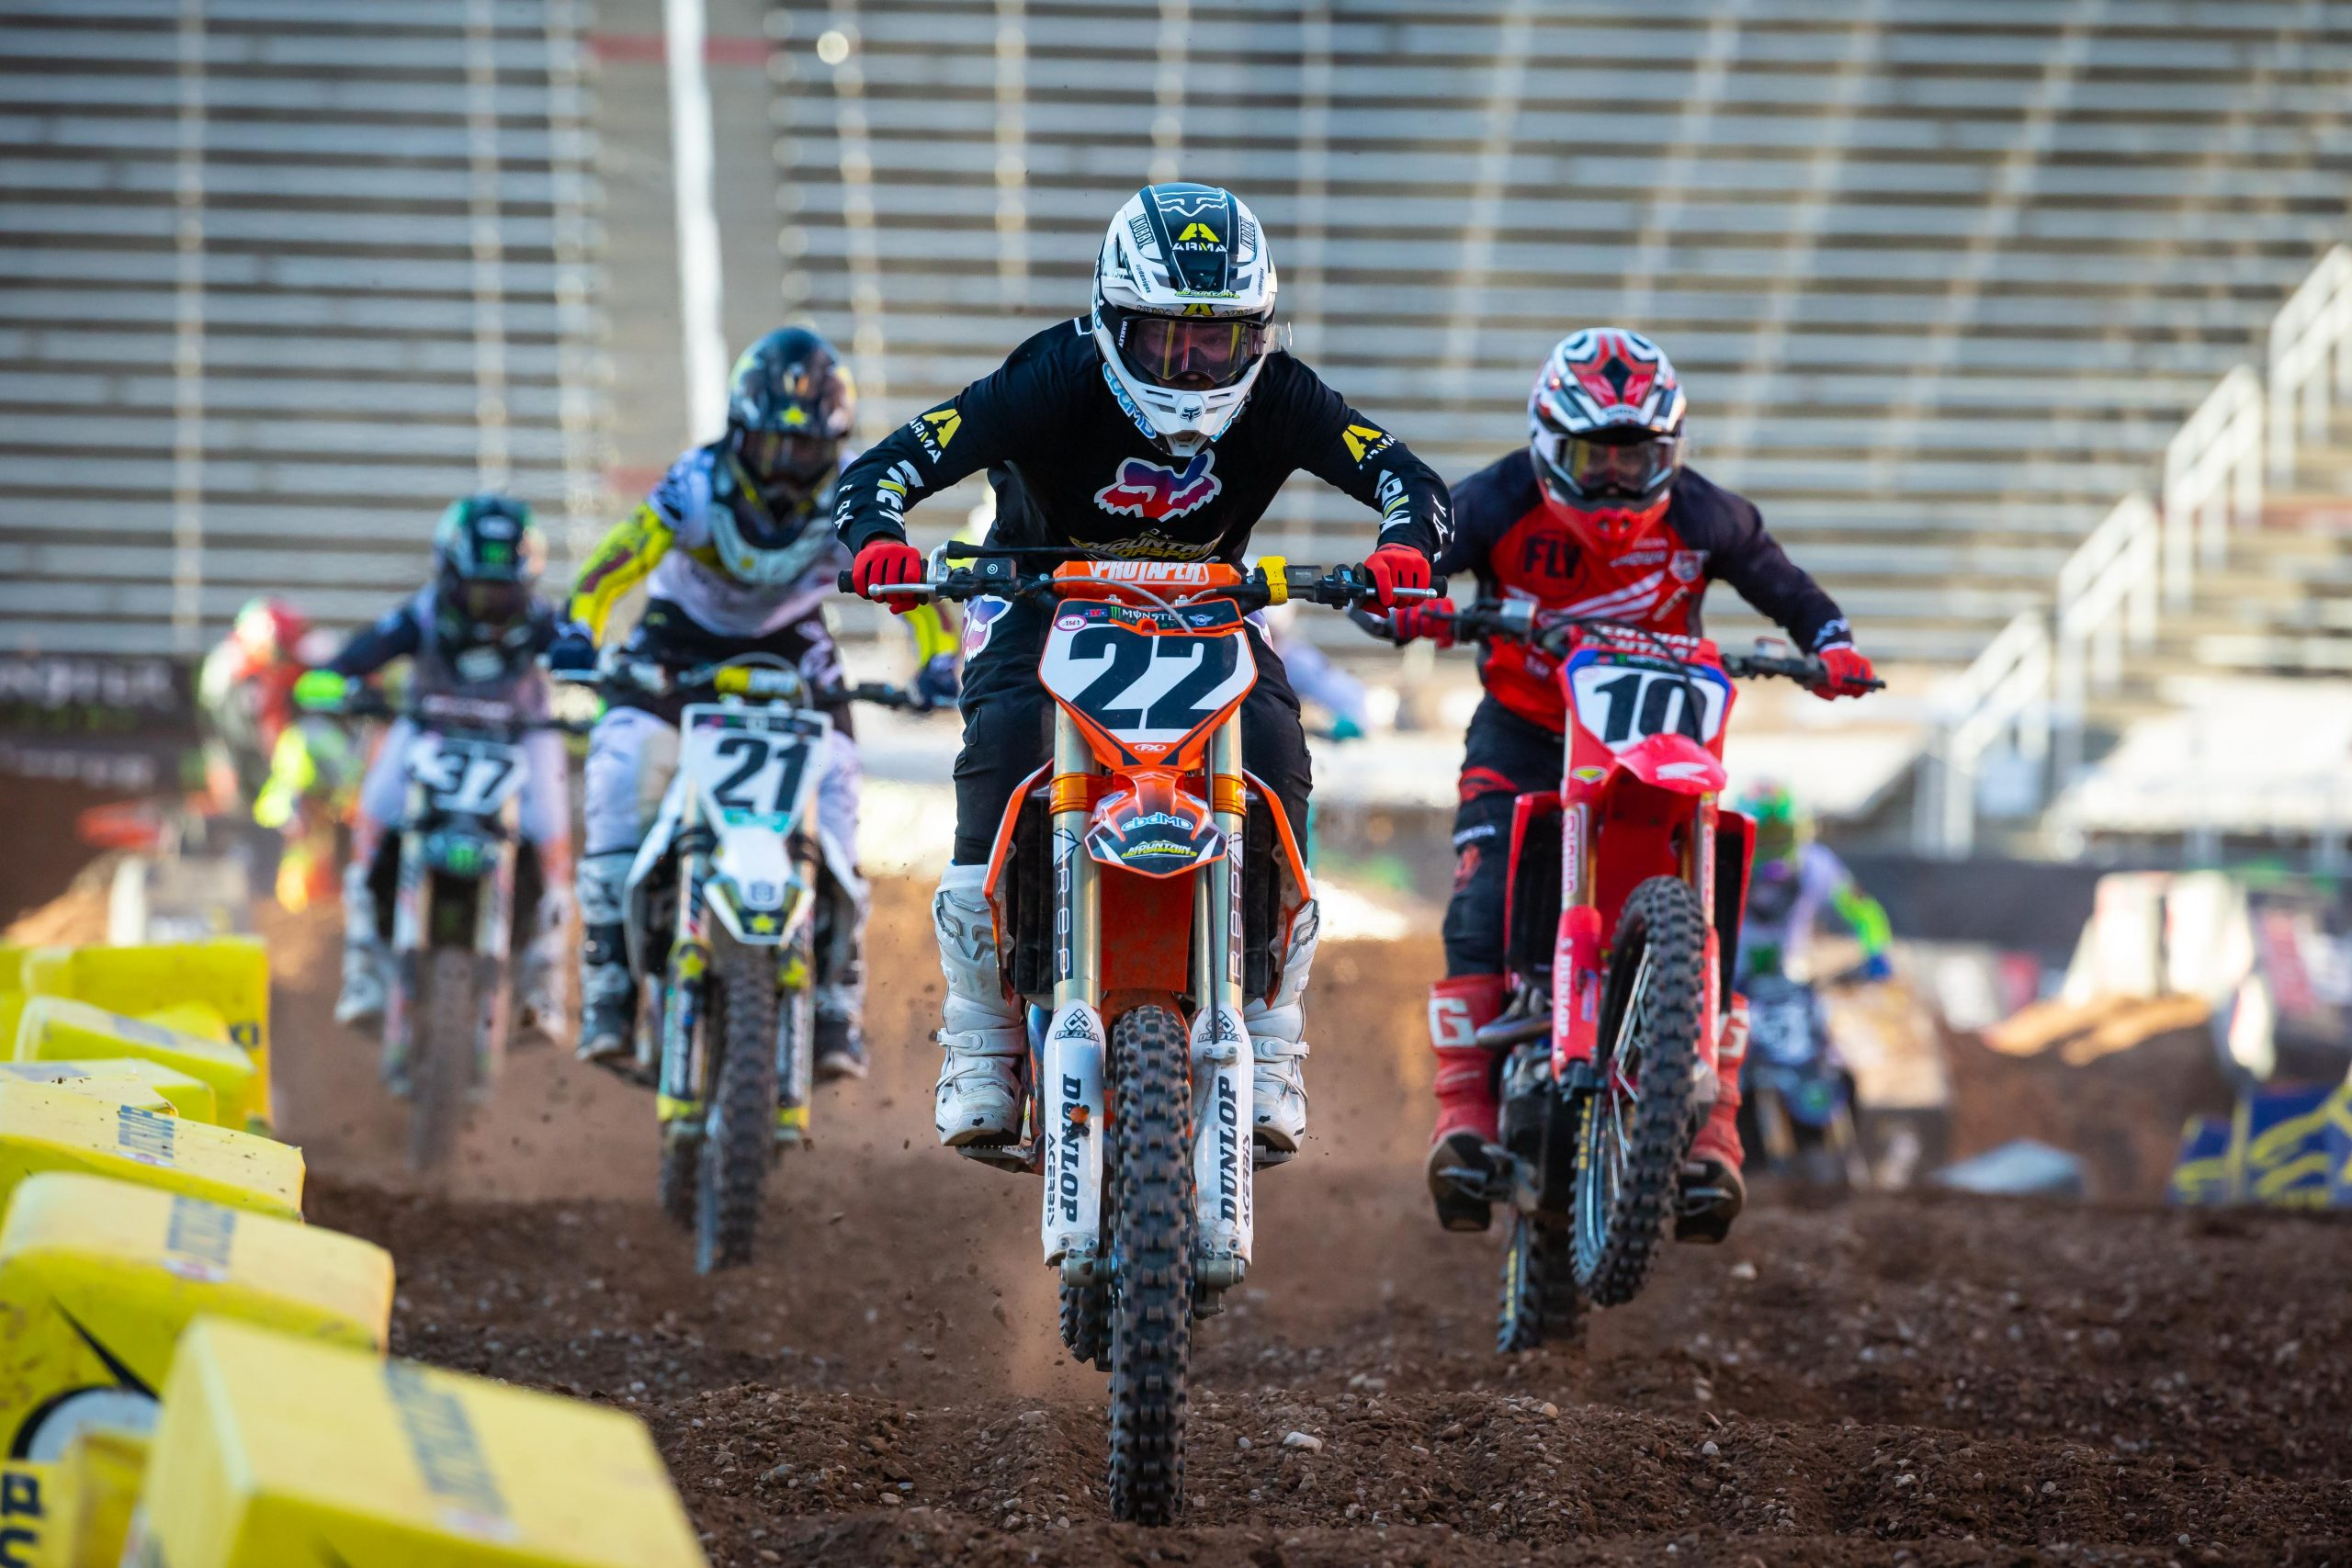 Find Out Whats Inside The November Issue of Racer X